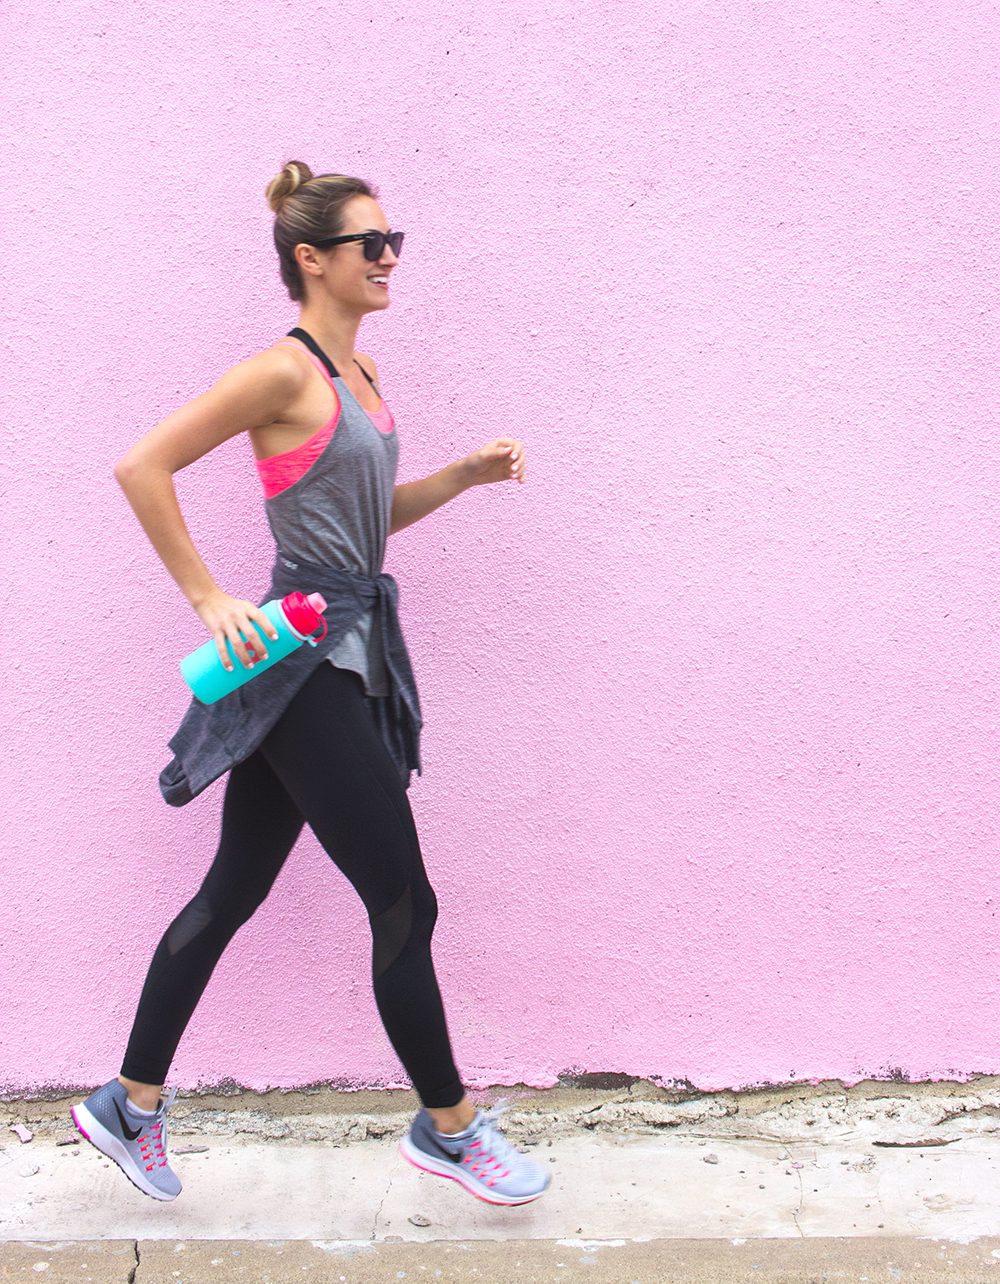 livvyland-blog-olivia-watson-jack-rabbit-nyc-workout-nike-outfit-neon-pegasis-running-shoes-fitness-outfit-inspiration-3